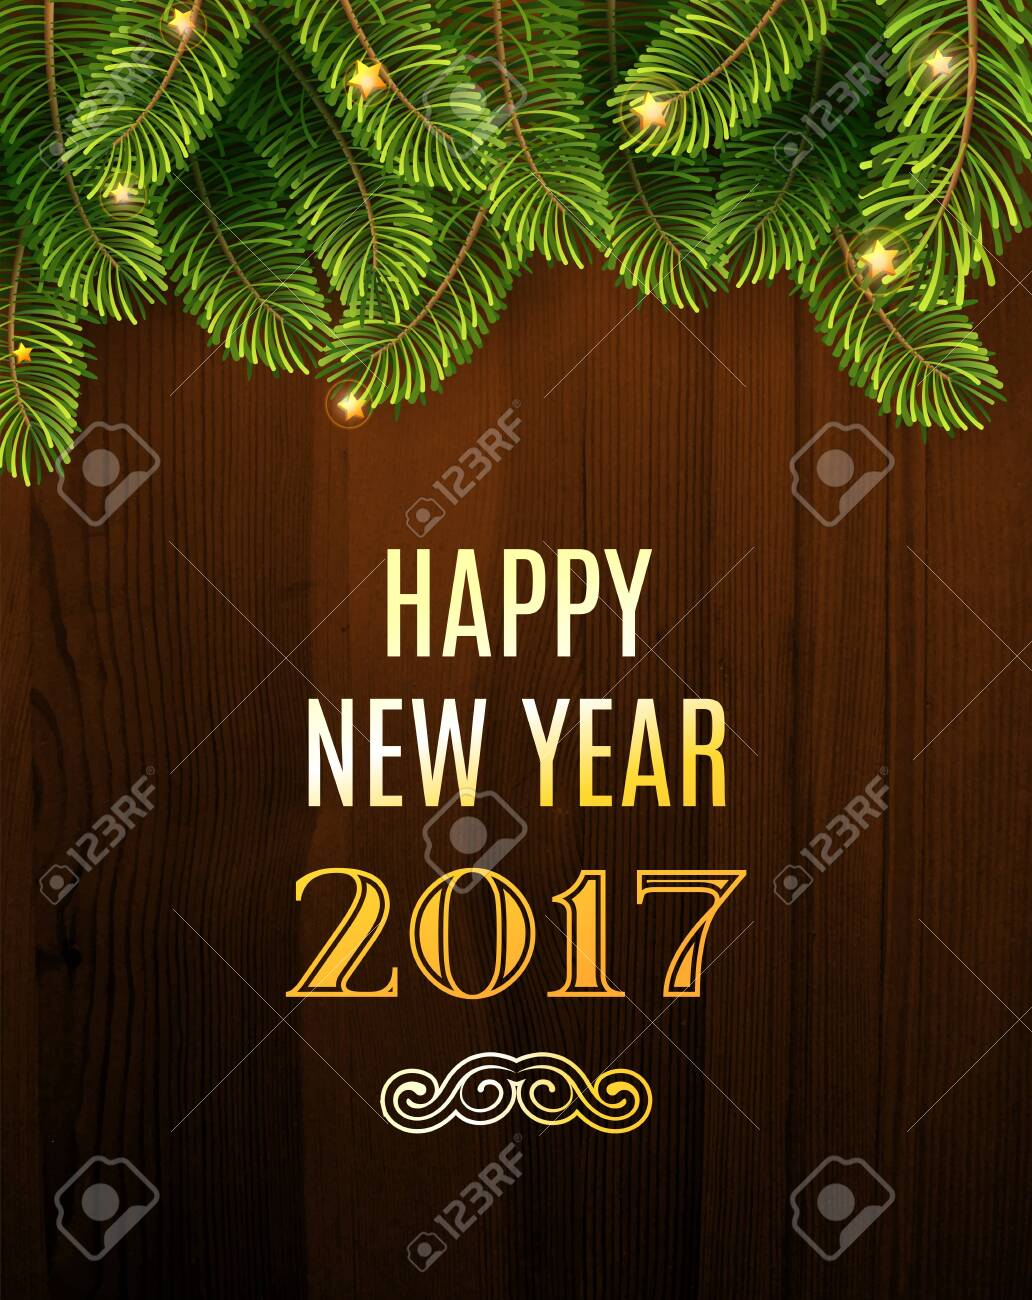 Christmas Greeting Card. Inscription with Christmas and new year 2017 against wooden texture and branches of a New Year's tree Christmas. Vector Illustration. - 148267894